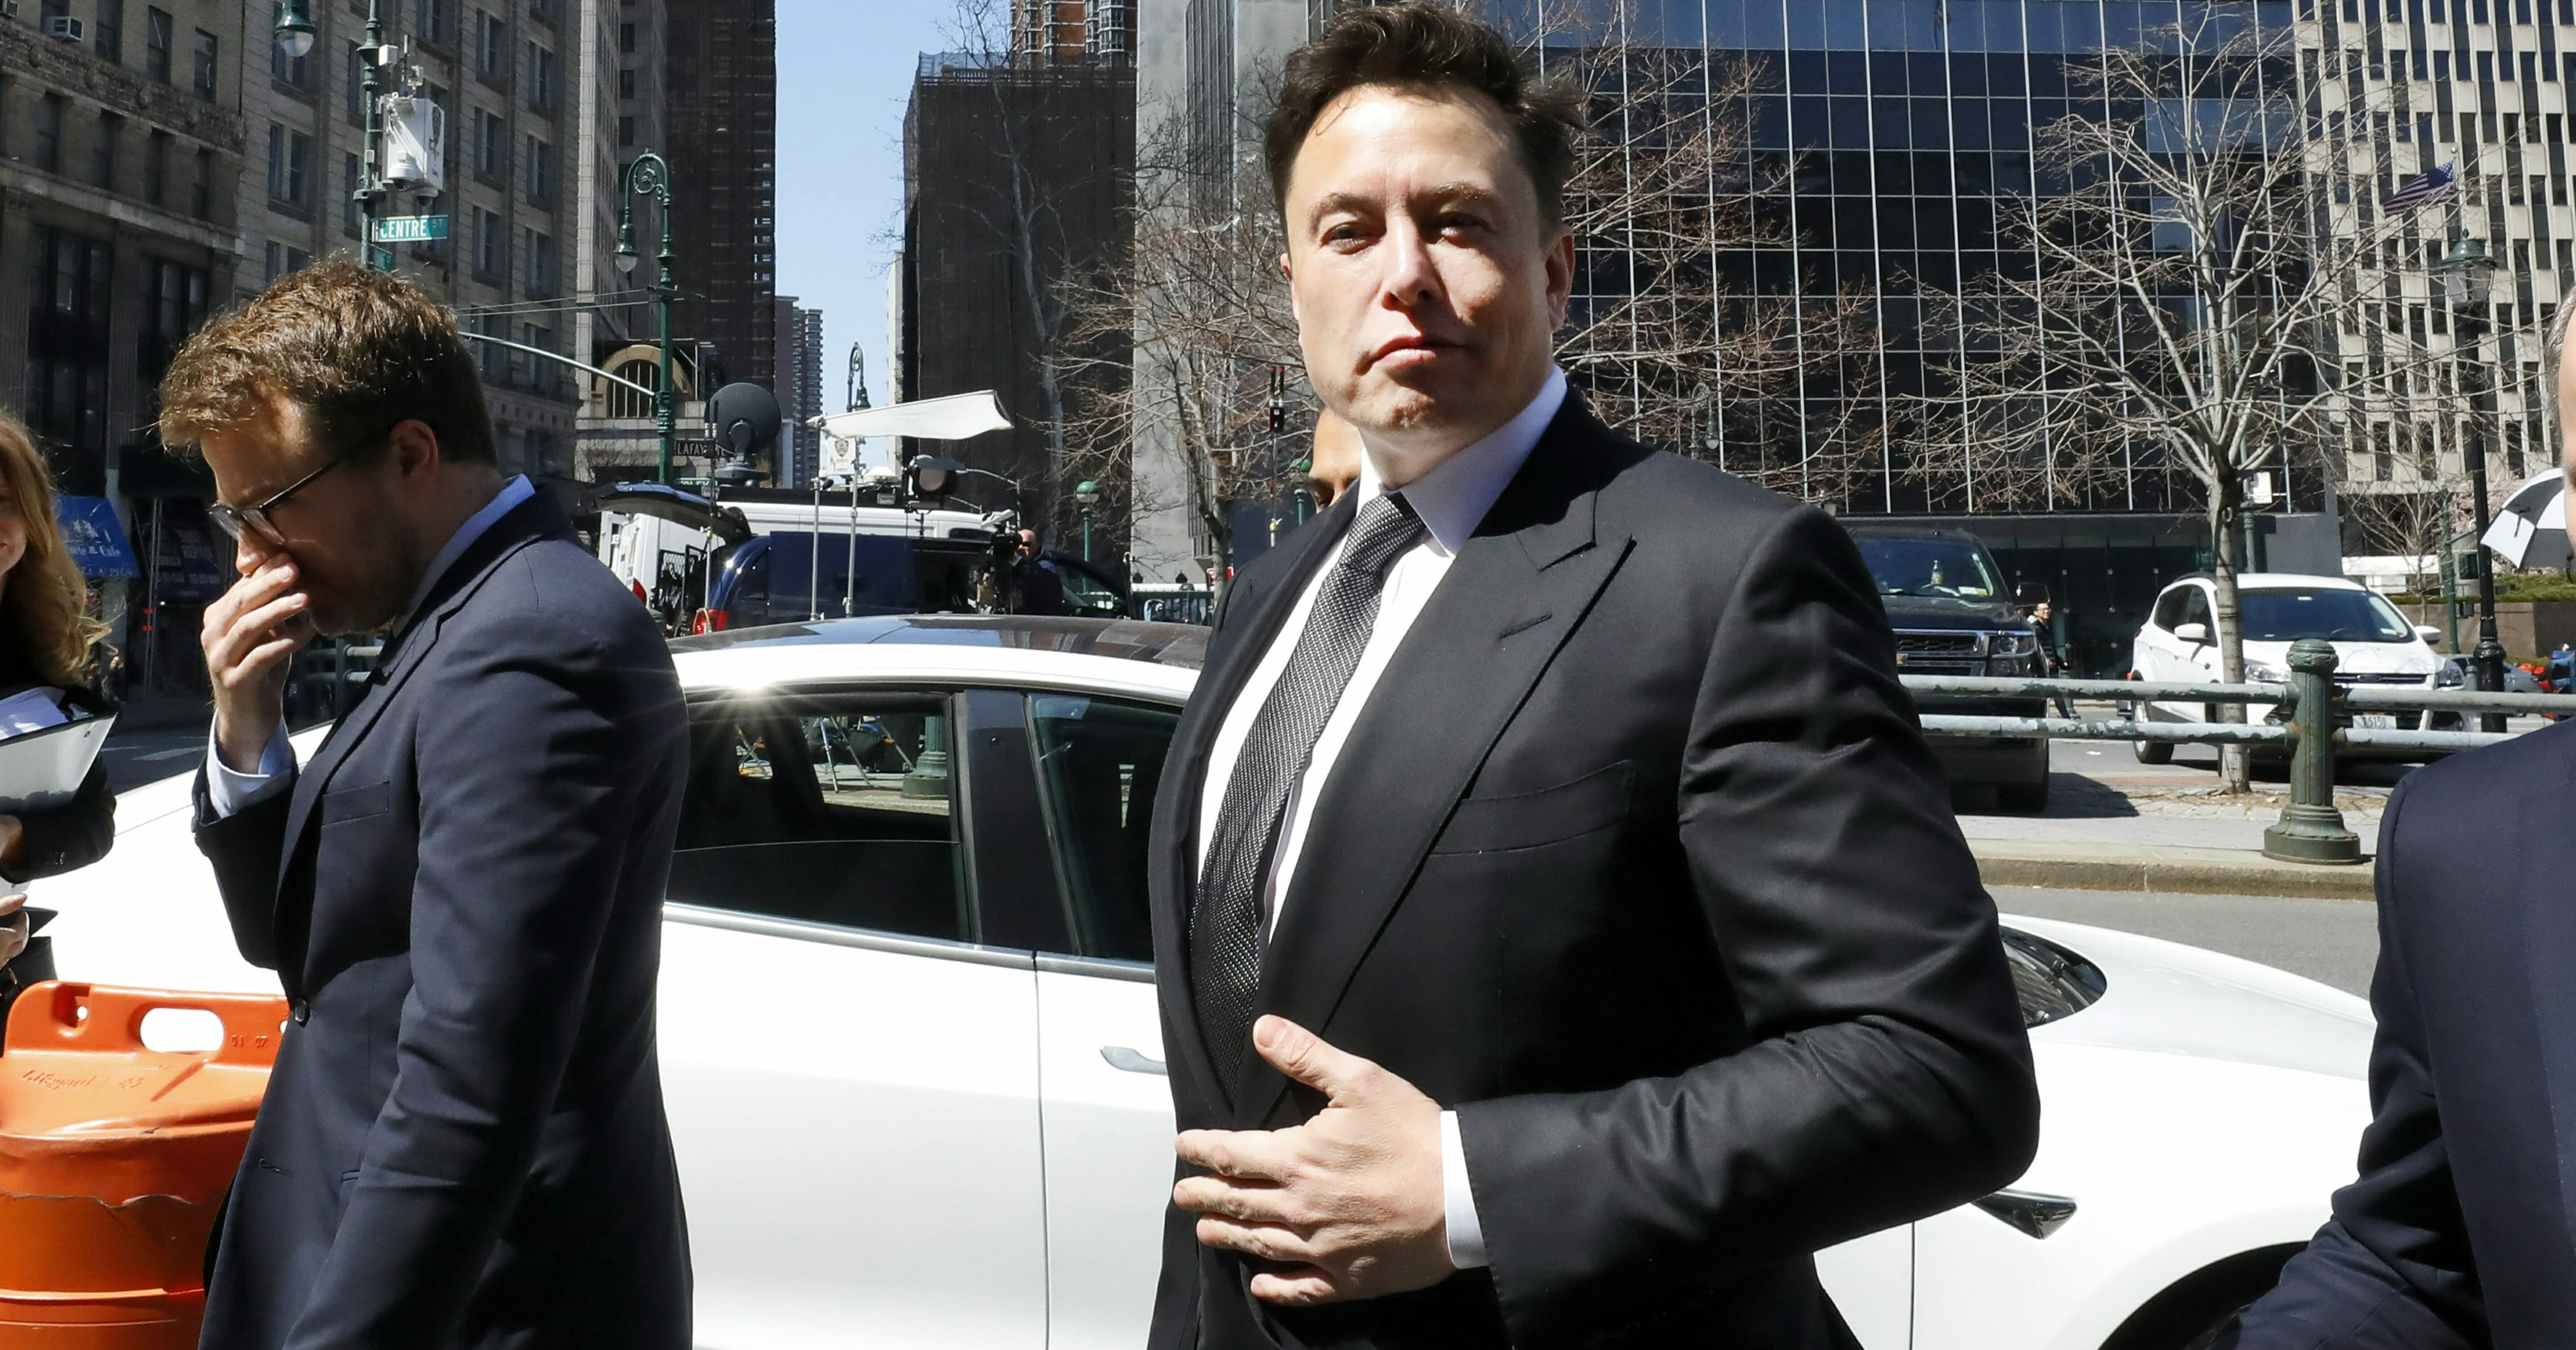 Tesla CEO Elon Musk arrives in a Tesla at Manhattan Federal Court in New York on Thursday, April 4, 2019.